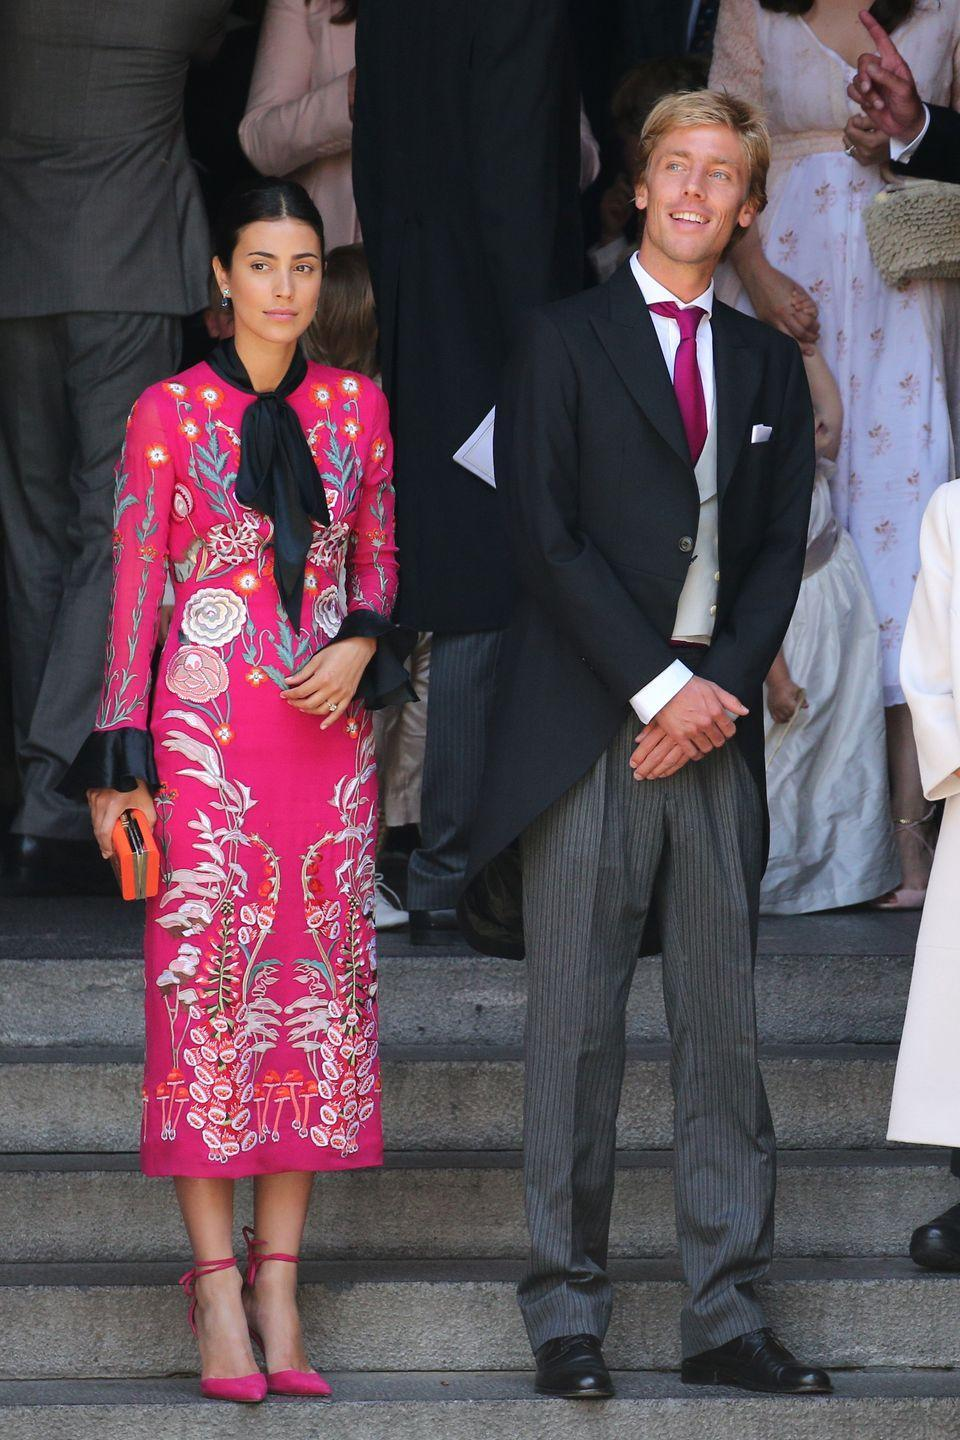 <p>A native of Peru, de Osma met Prince Christian of Hanover when she served as his tour guide during one of his visits to her country in 2005. The lawyer and former model married her prince in an extravagant ceremony in the streets of Lima, Peru in 2018. </p>